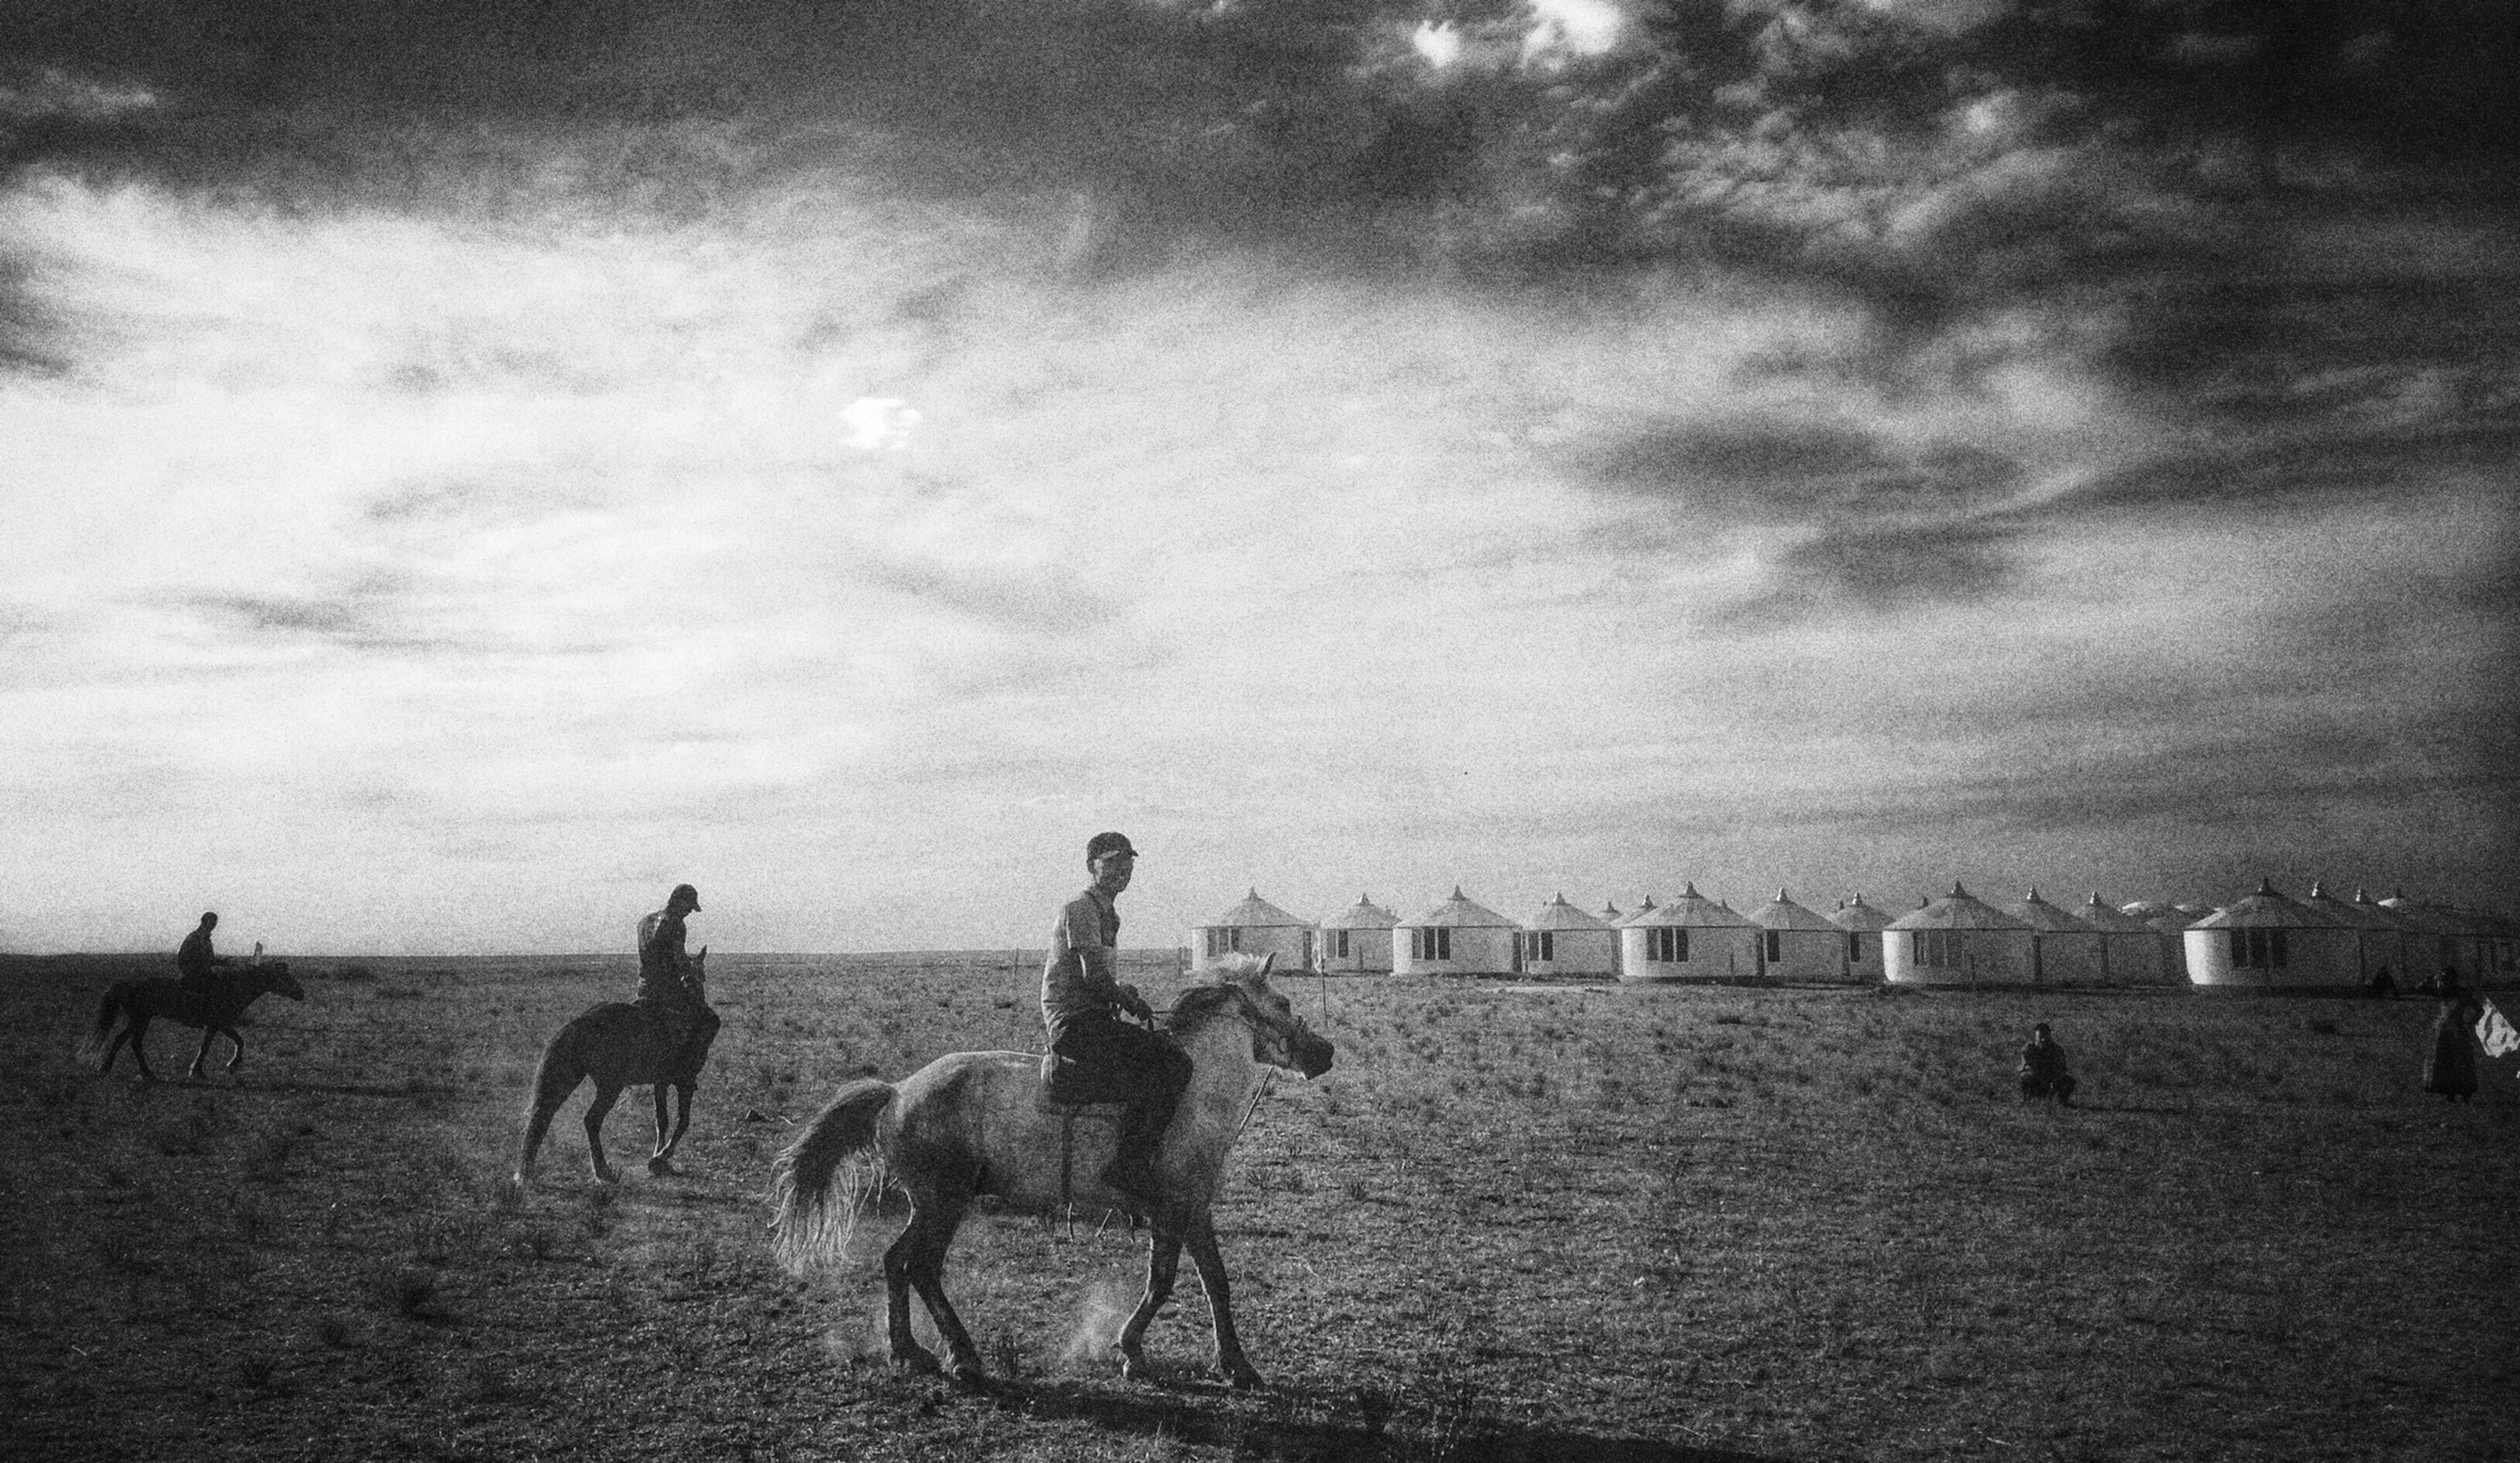 animal themes, sky, men, lifestyles, leisure activity, domestic animals, mammal, cloud - sky, sand, landscape, person, full length, day, outdoors, livestock, togetherness, architecture